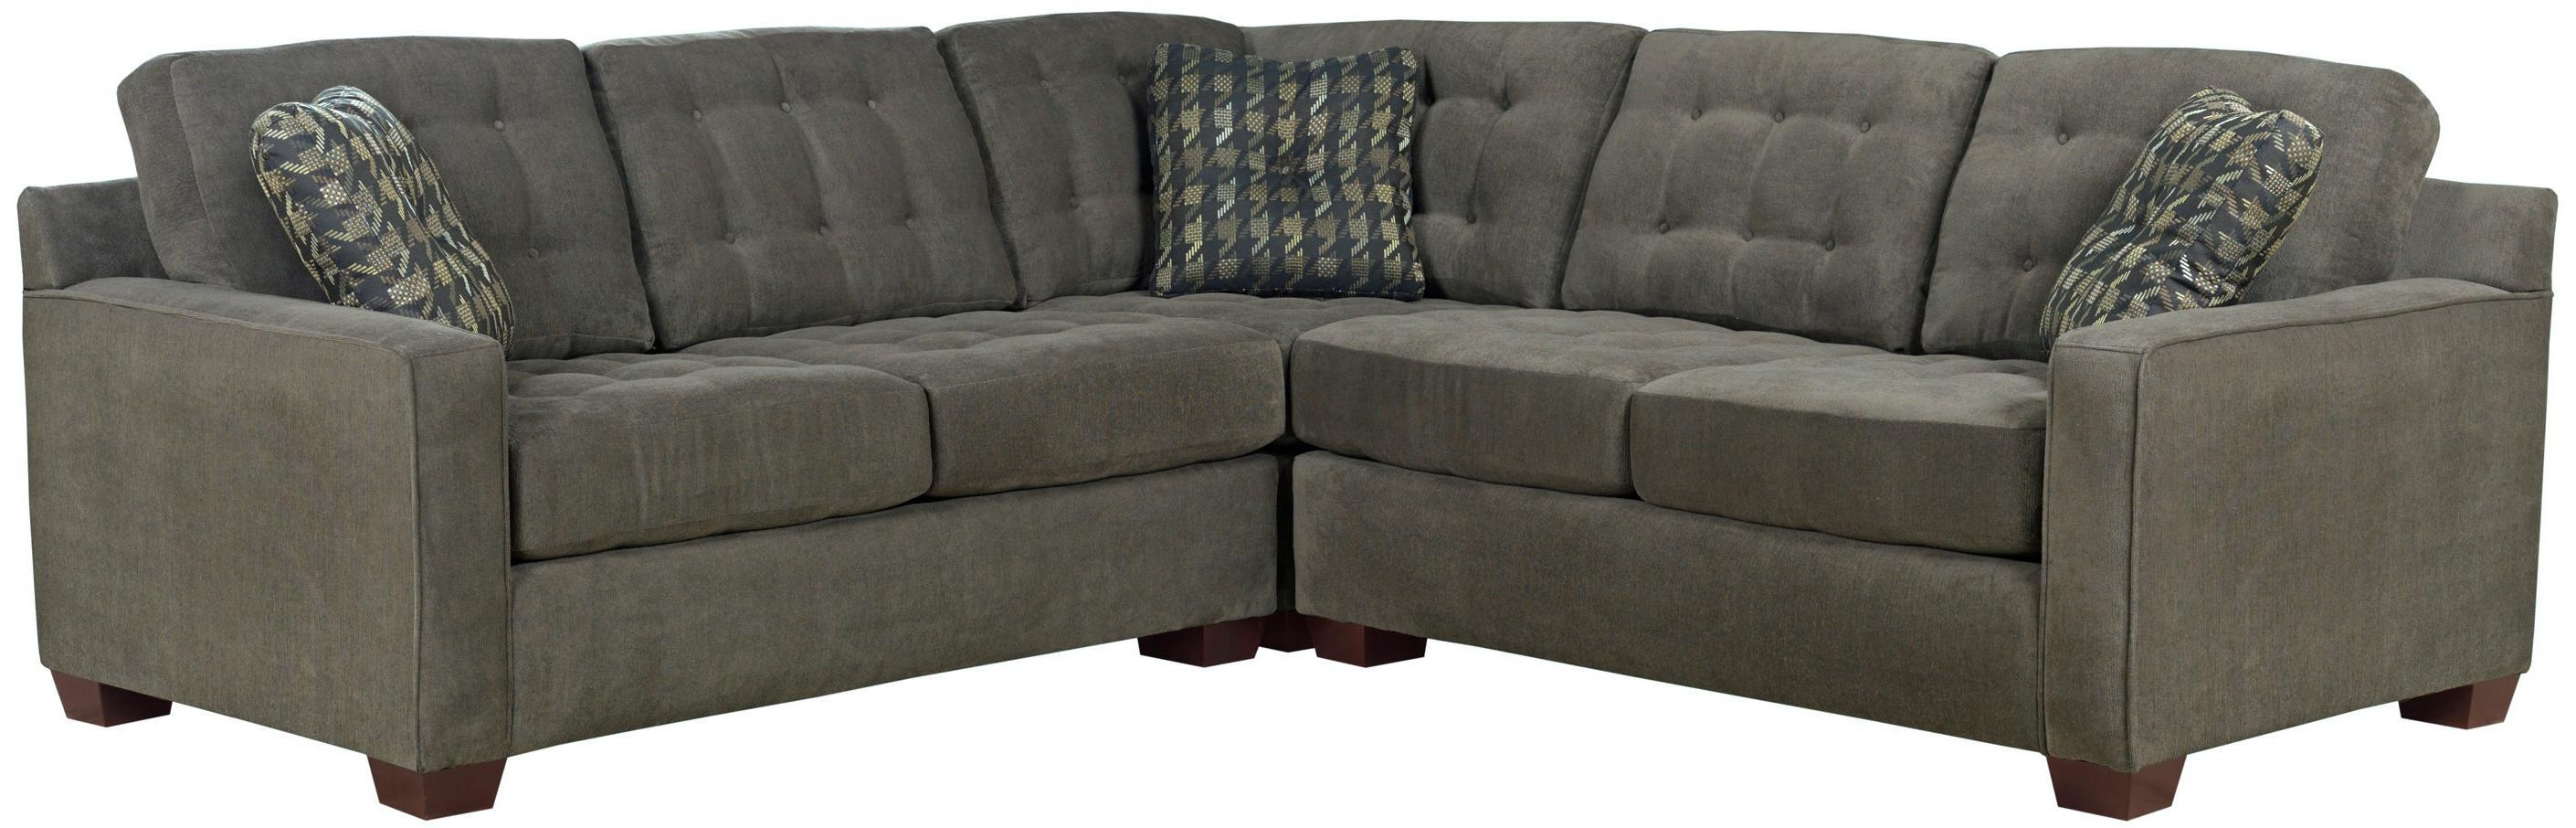 Broyhill Furniture Tribeca Contemporary L Shaped Sectional Sofa For Broyhill Sectional Sofas (View 11 of 15)